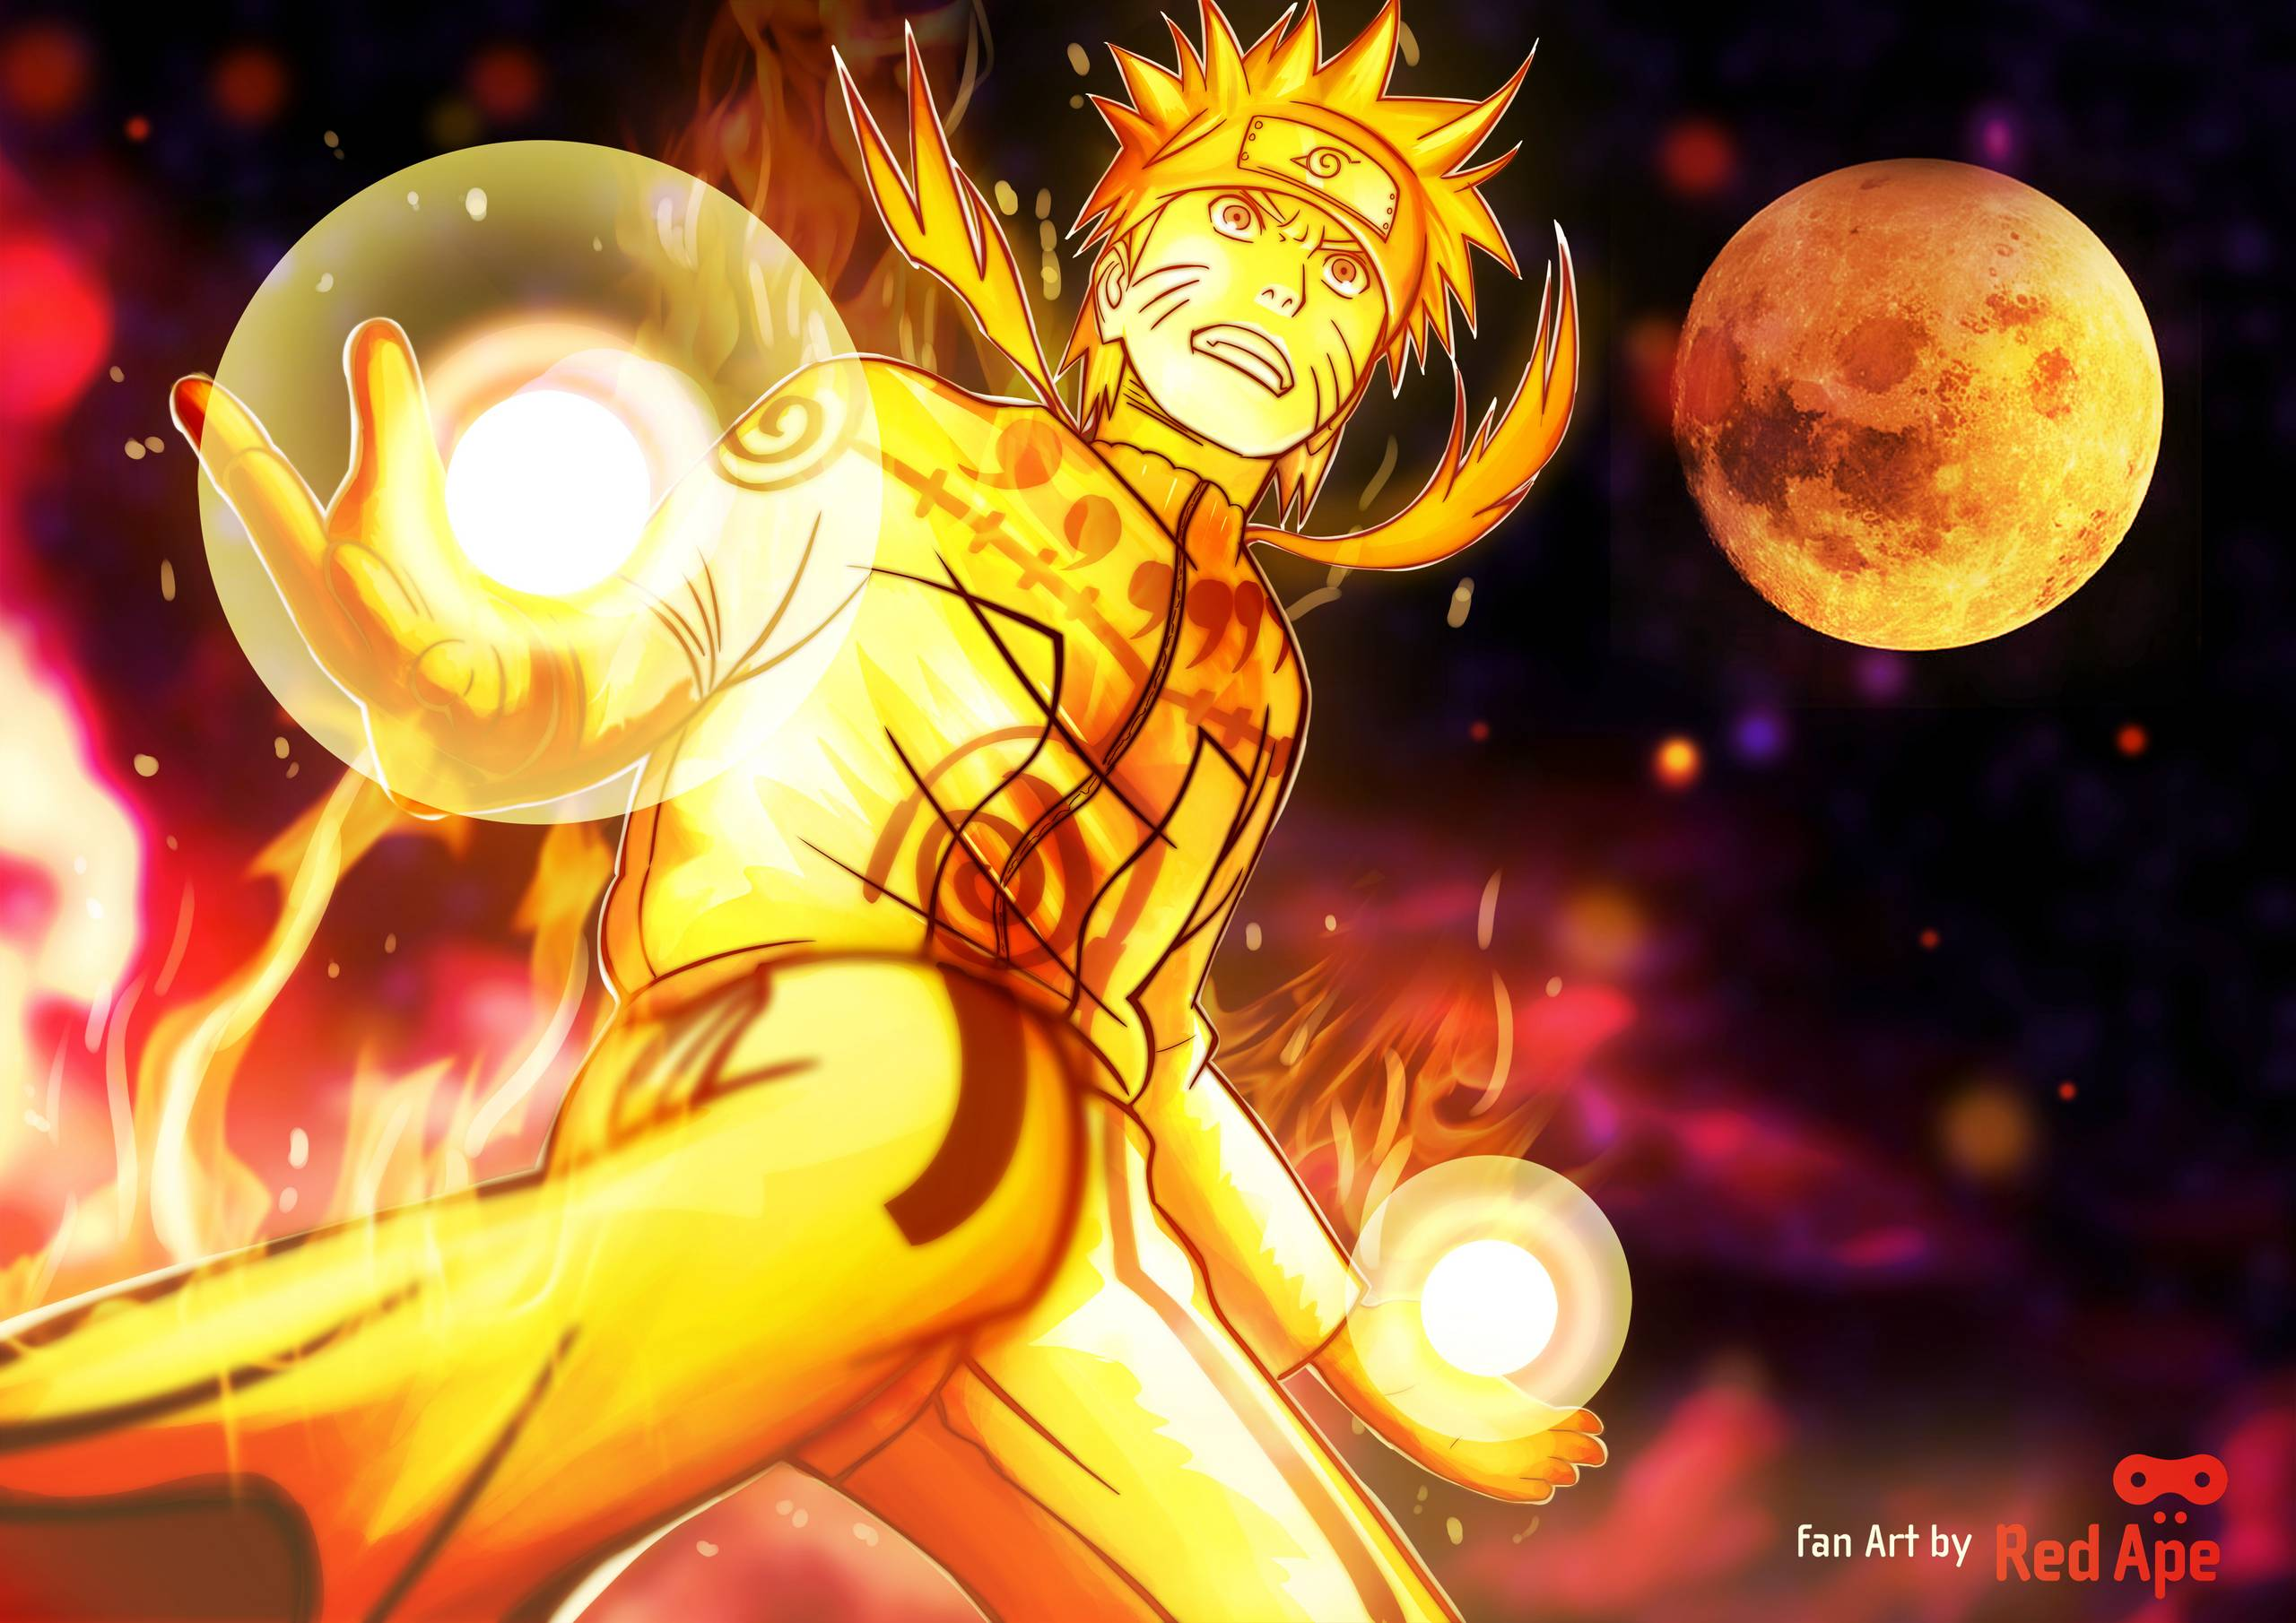 Naruto free wallpapers wallpaper cave naruto shippuden wallpaper free for tablet wolcartoon voltagebd Image collections